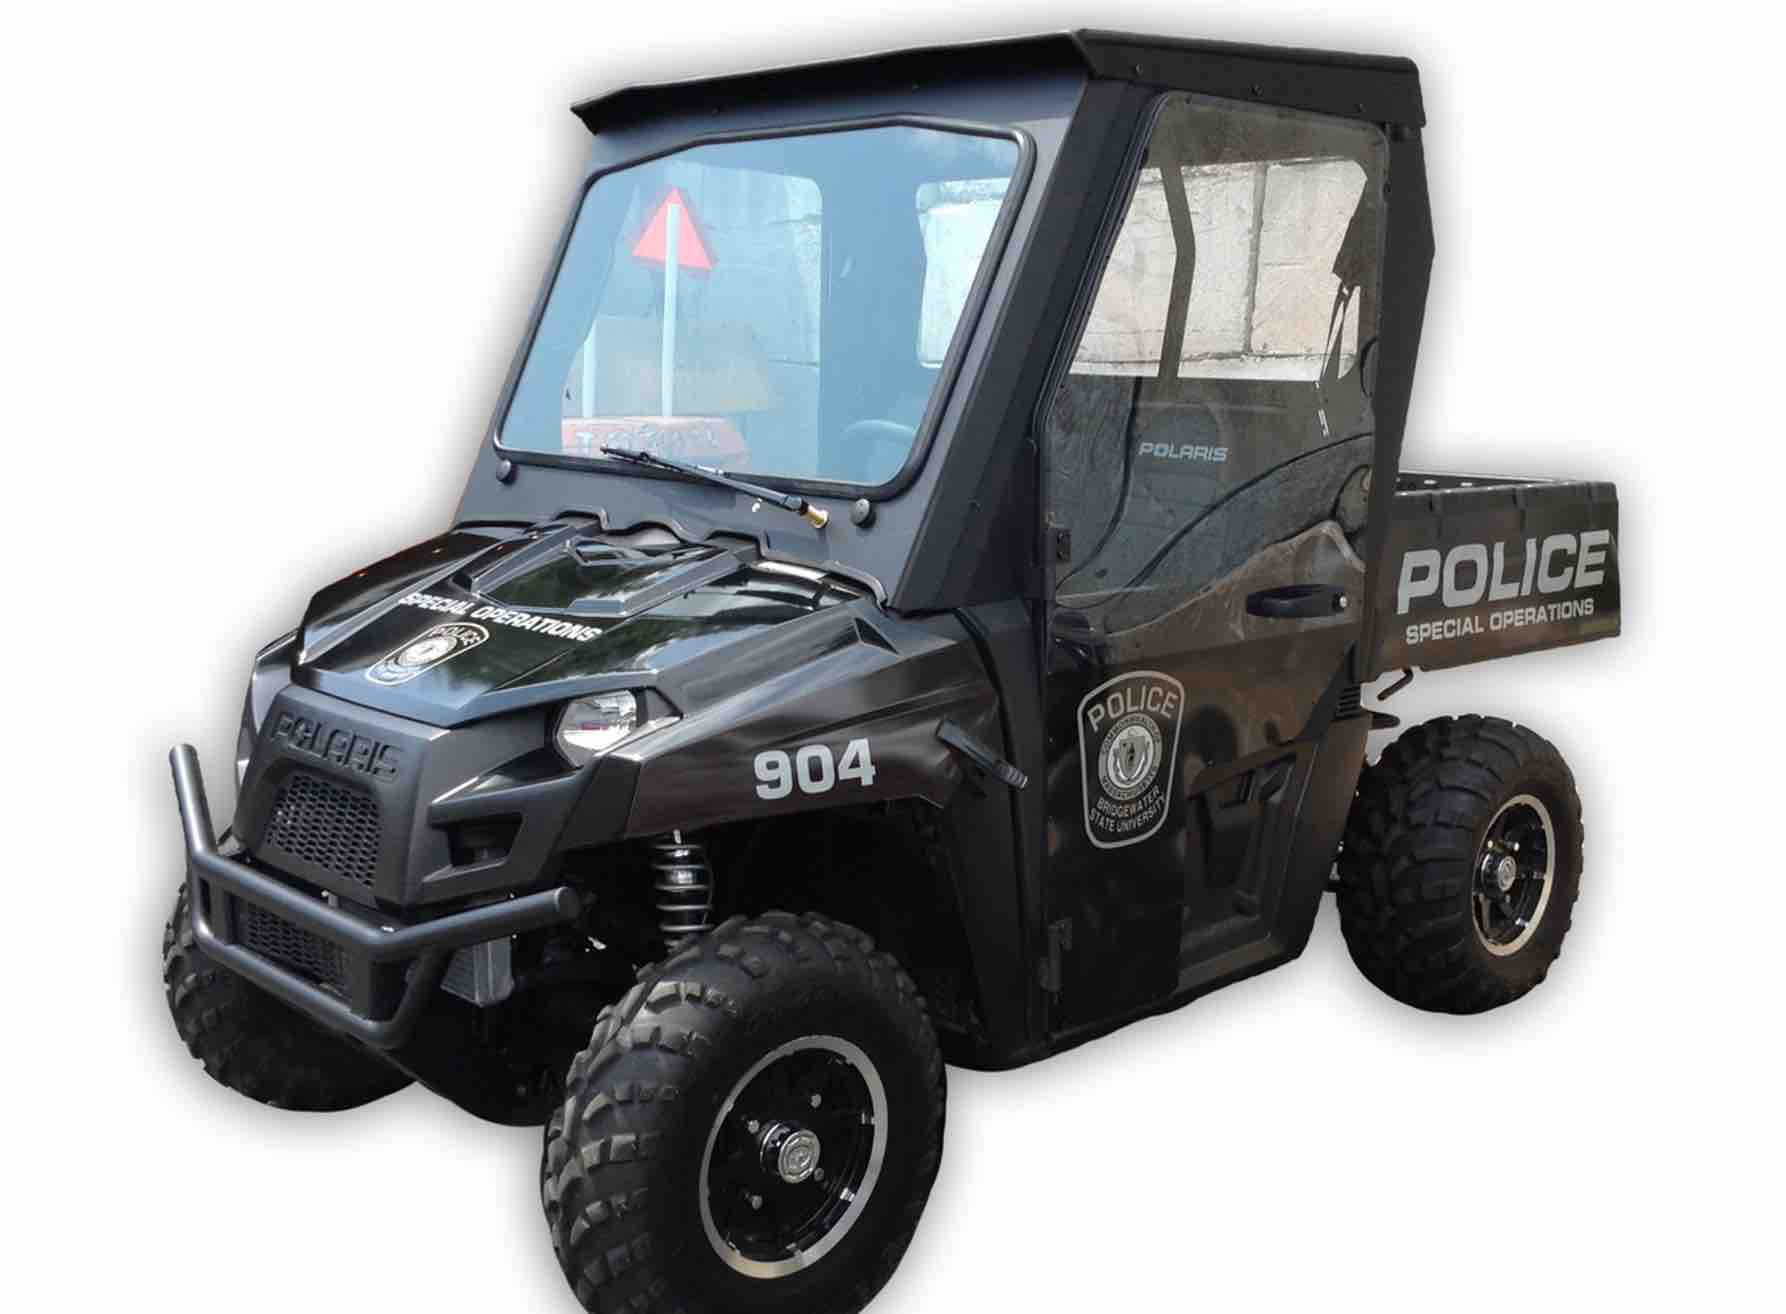 police-misc-vehicles16.jpeg